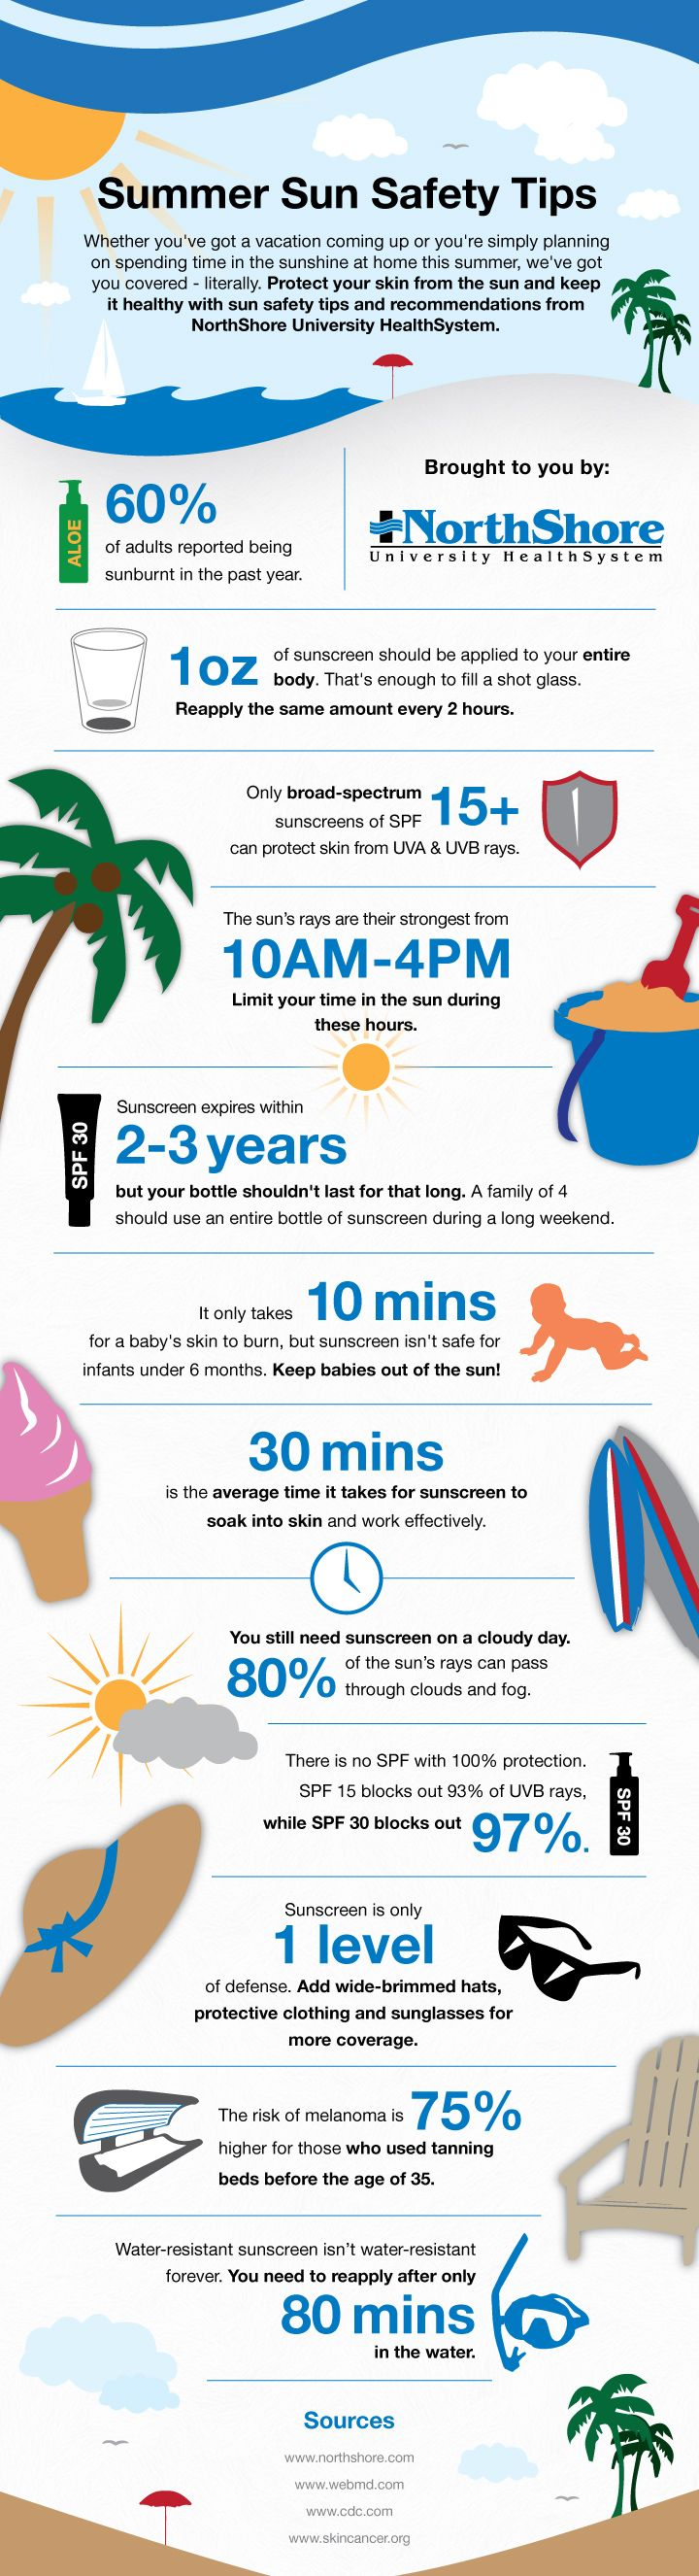 Protect your skin from the summer sun with #sunsafety #tips from NorthShore University HealthSystem. #Infographic